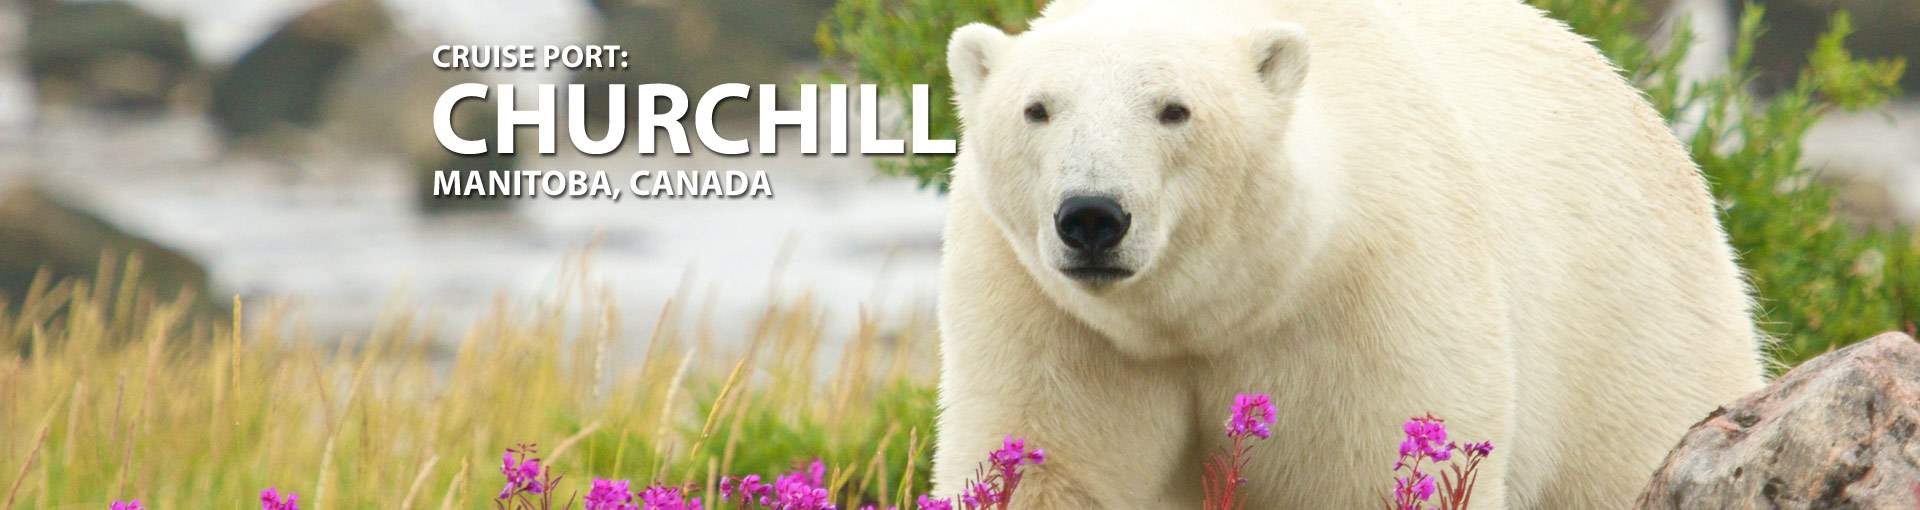 Churchill, Manitoba Cruise Port